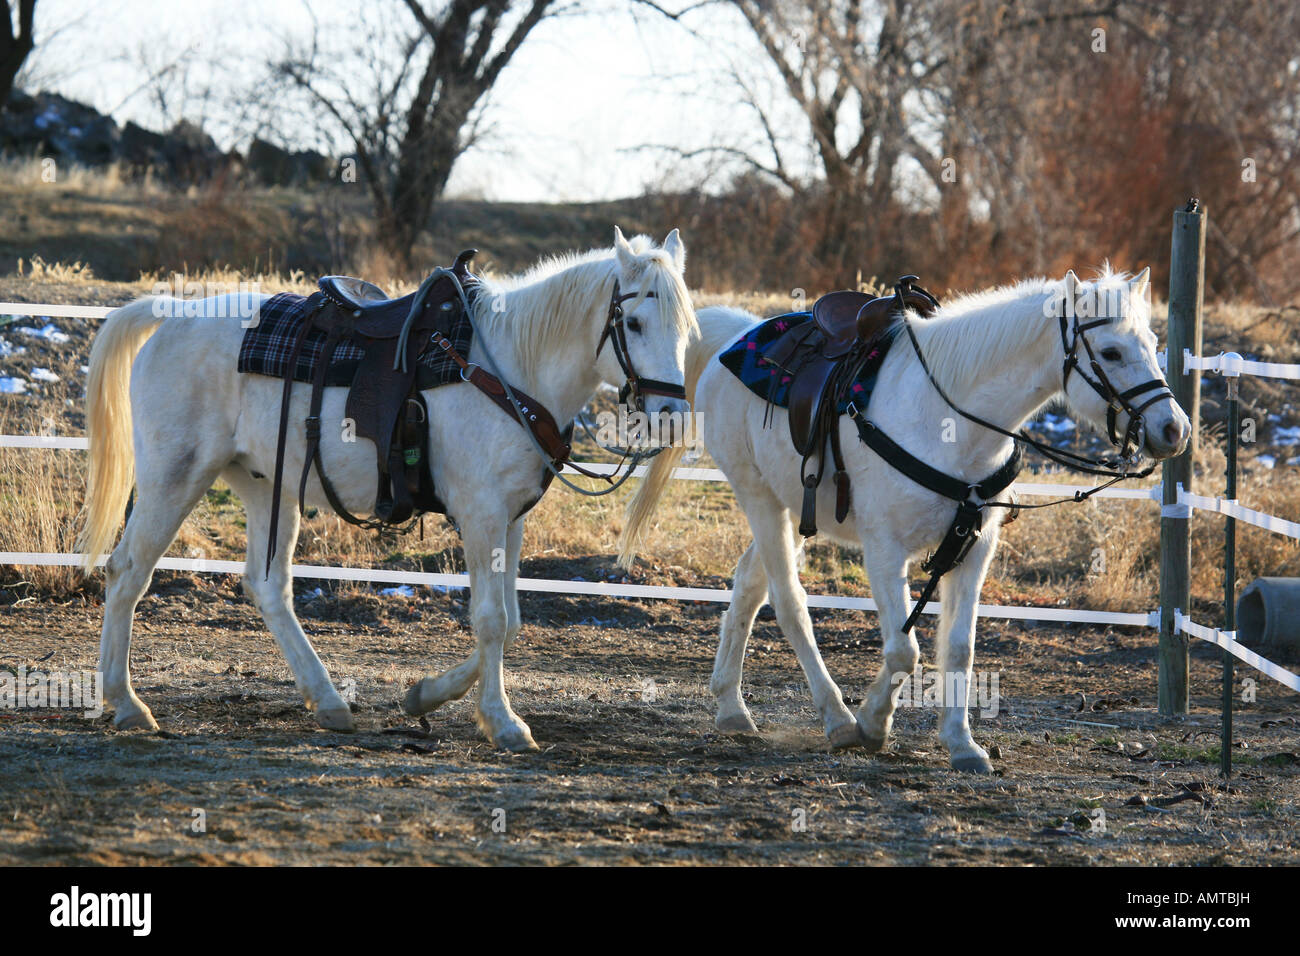 Two White Arabian Horses In Pen With Saddle And Bridle On Stock Photo Alamy